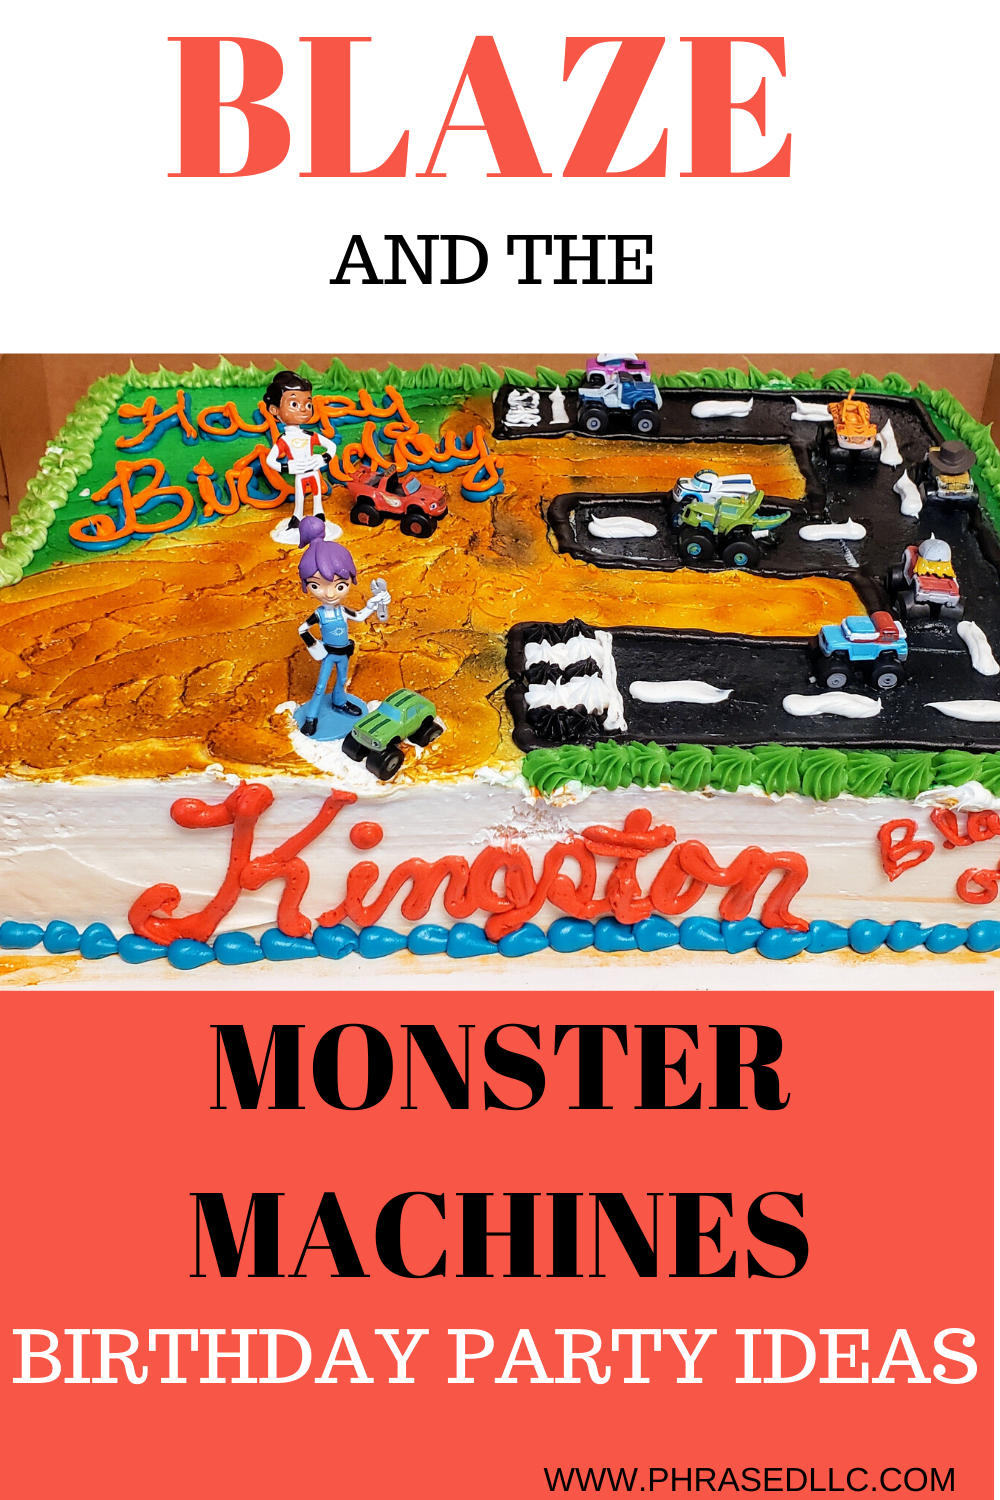 Blaze and the Monster Machines birthday party ideas. Everything from cake, decorations, activities, invitations, food and goodie bags.